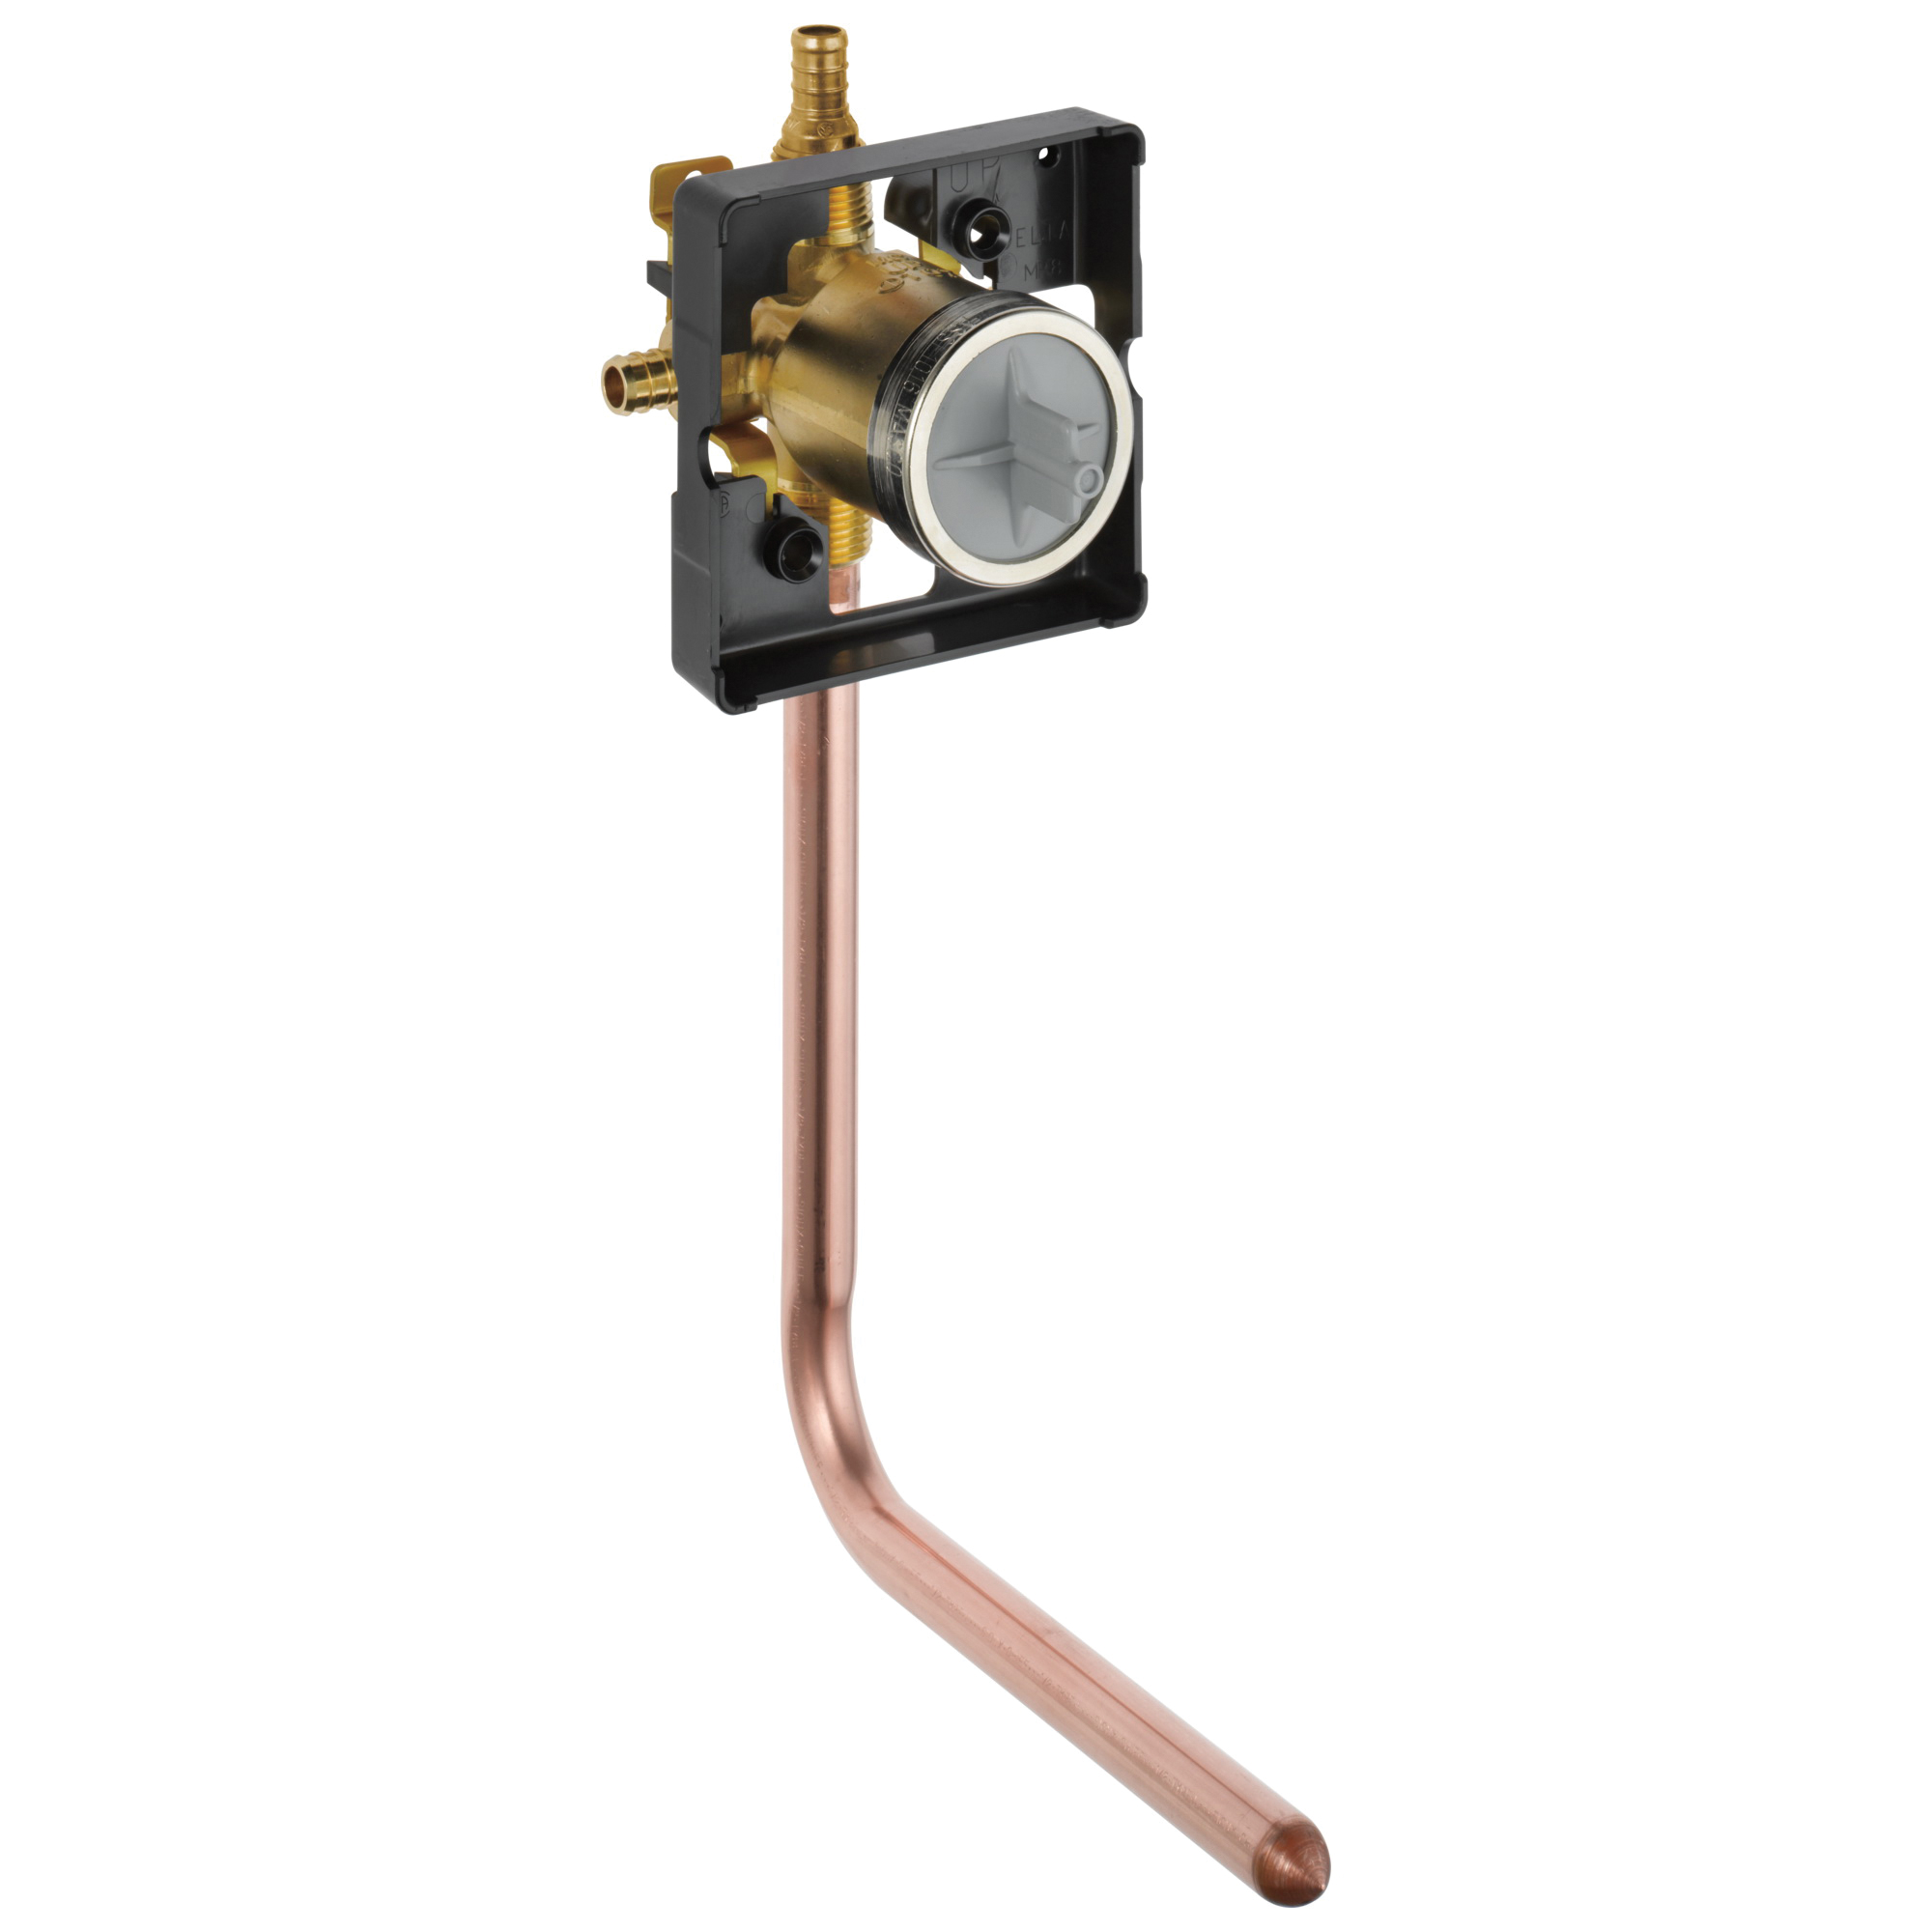 DELTA® R10000-PFT-PX MultiChoice® Universal Prefab Shower Rough-In Valve Body, 1/2 in PEX Crimp Inlet x 1/2 in PEX Crimp Outlet, Forged Brass Body, Domestic